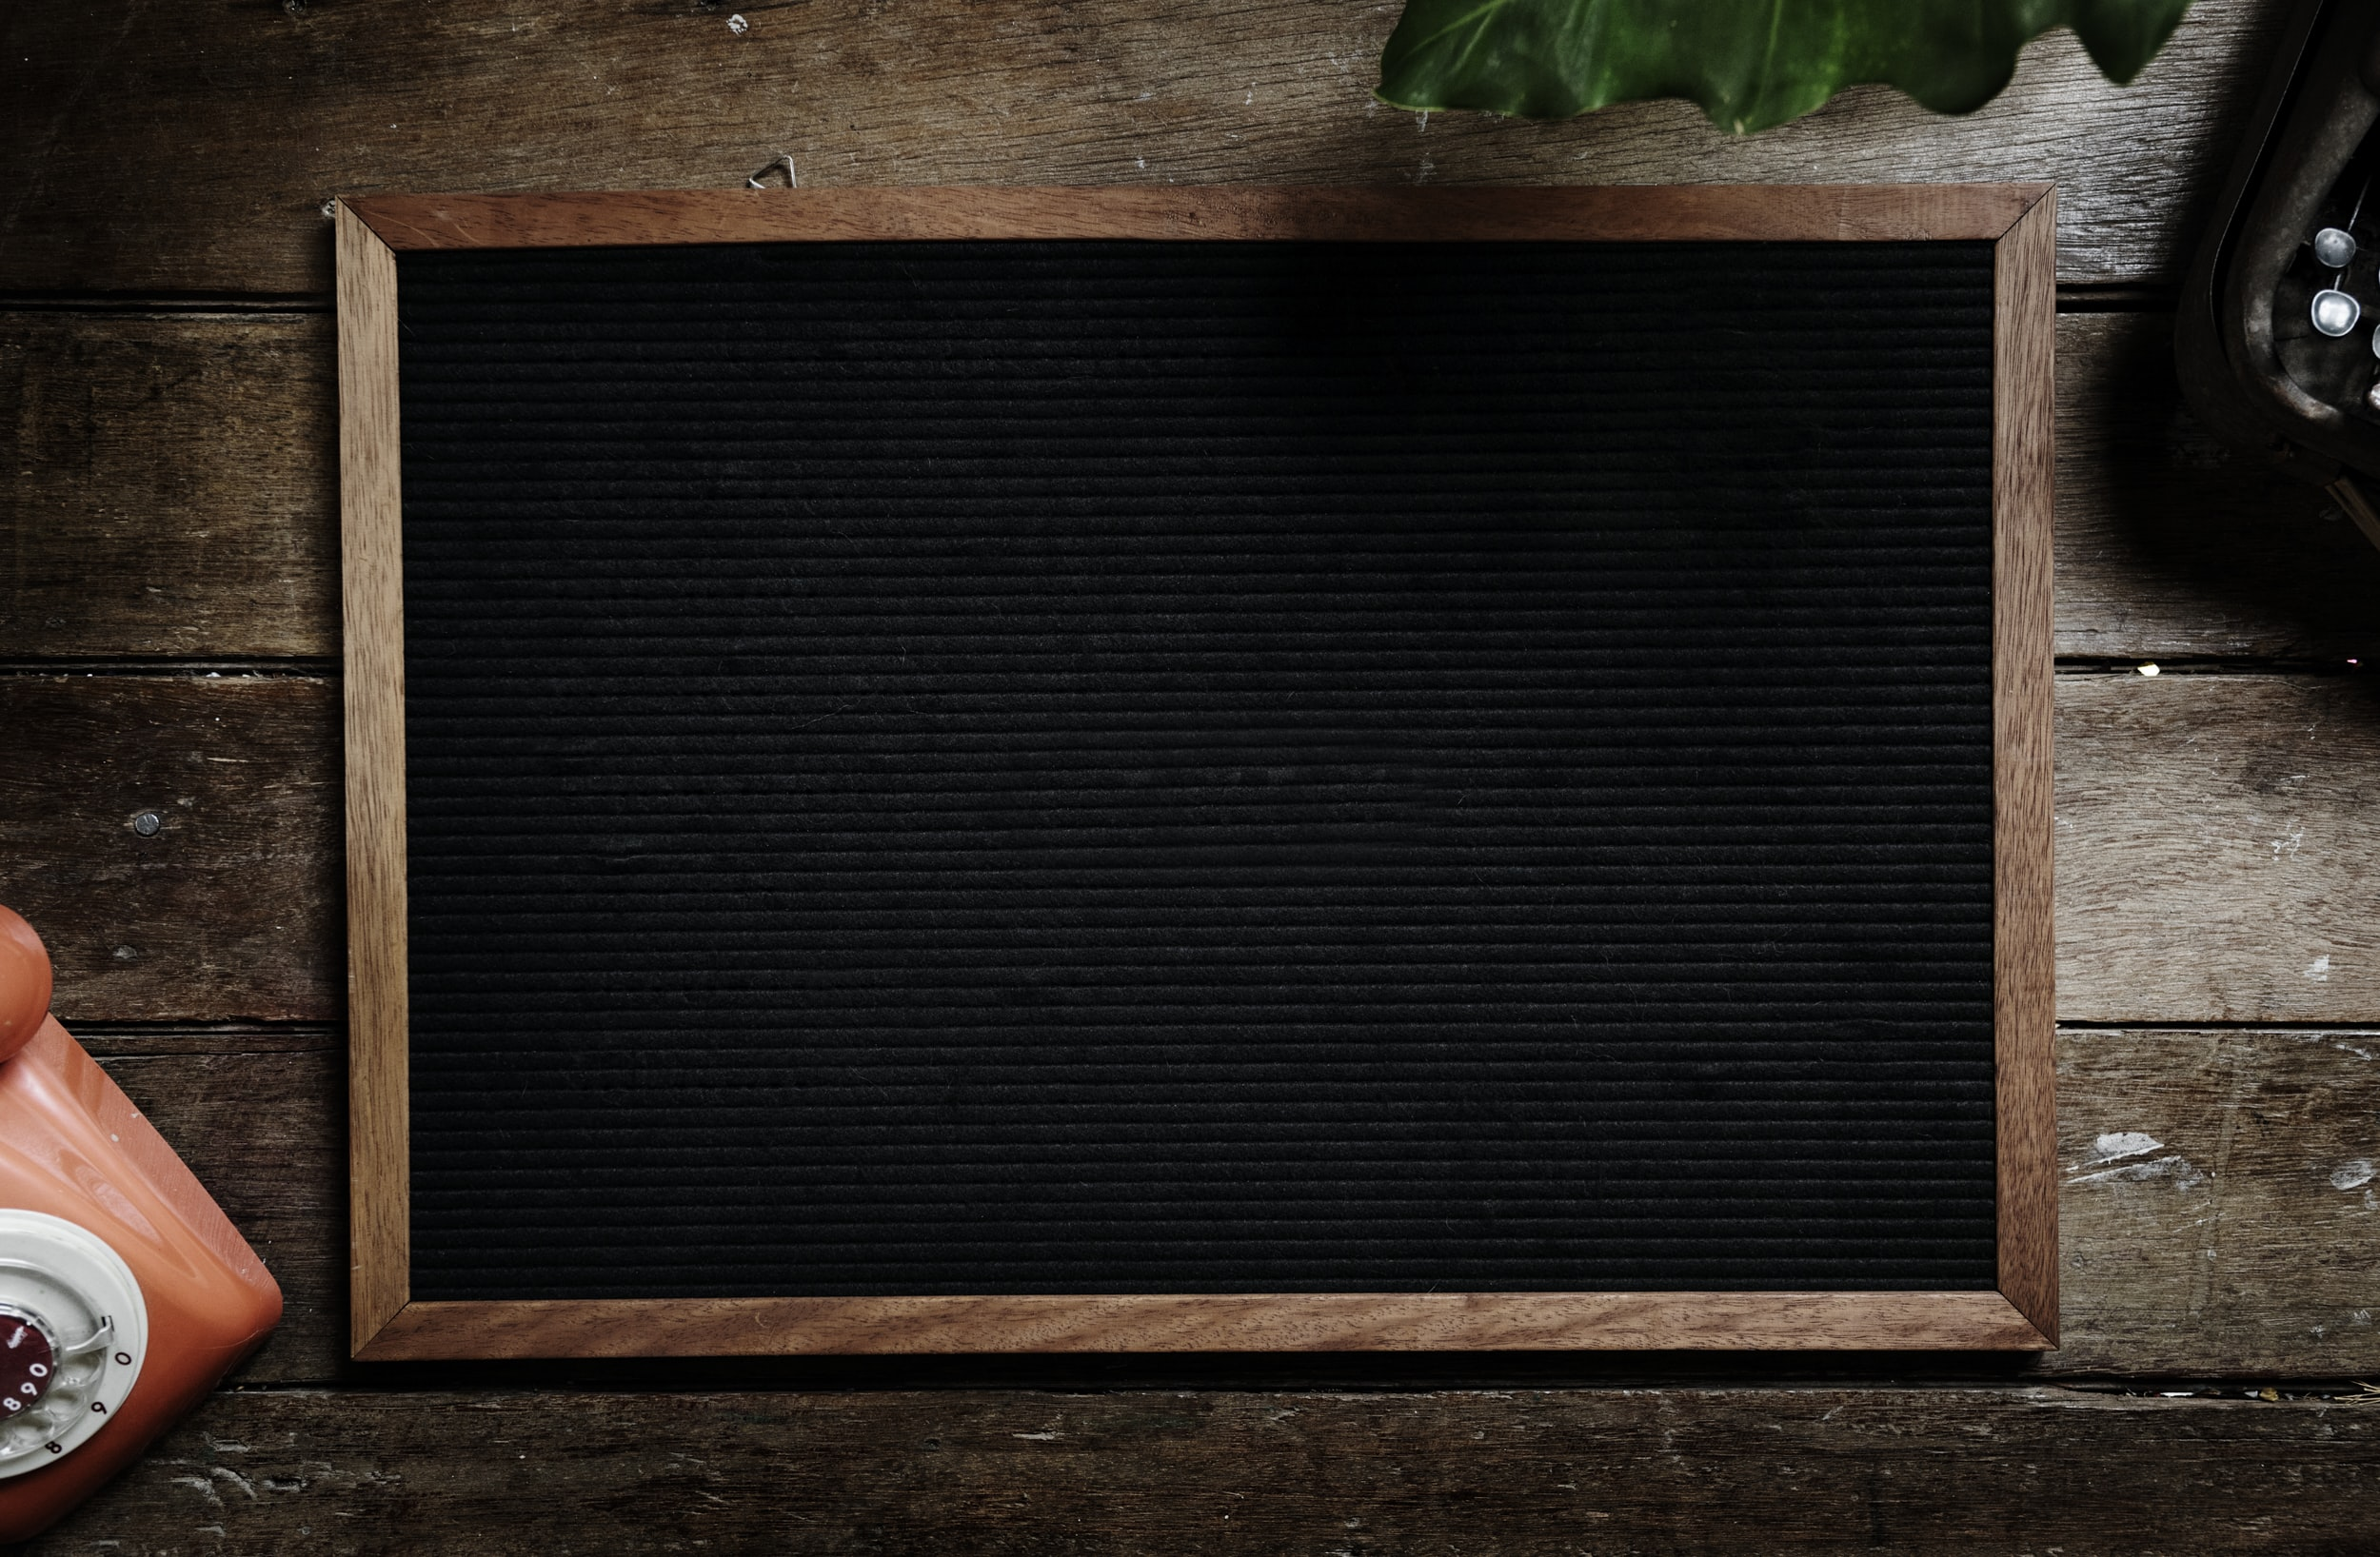 rectangular black board on brown wooden surface